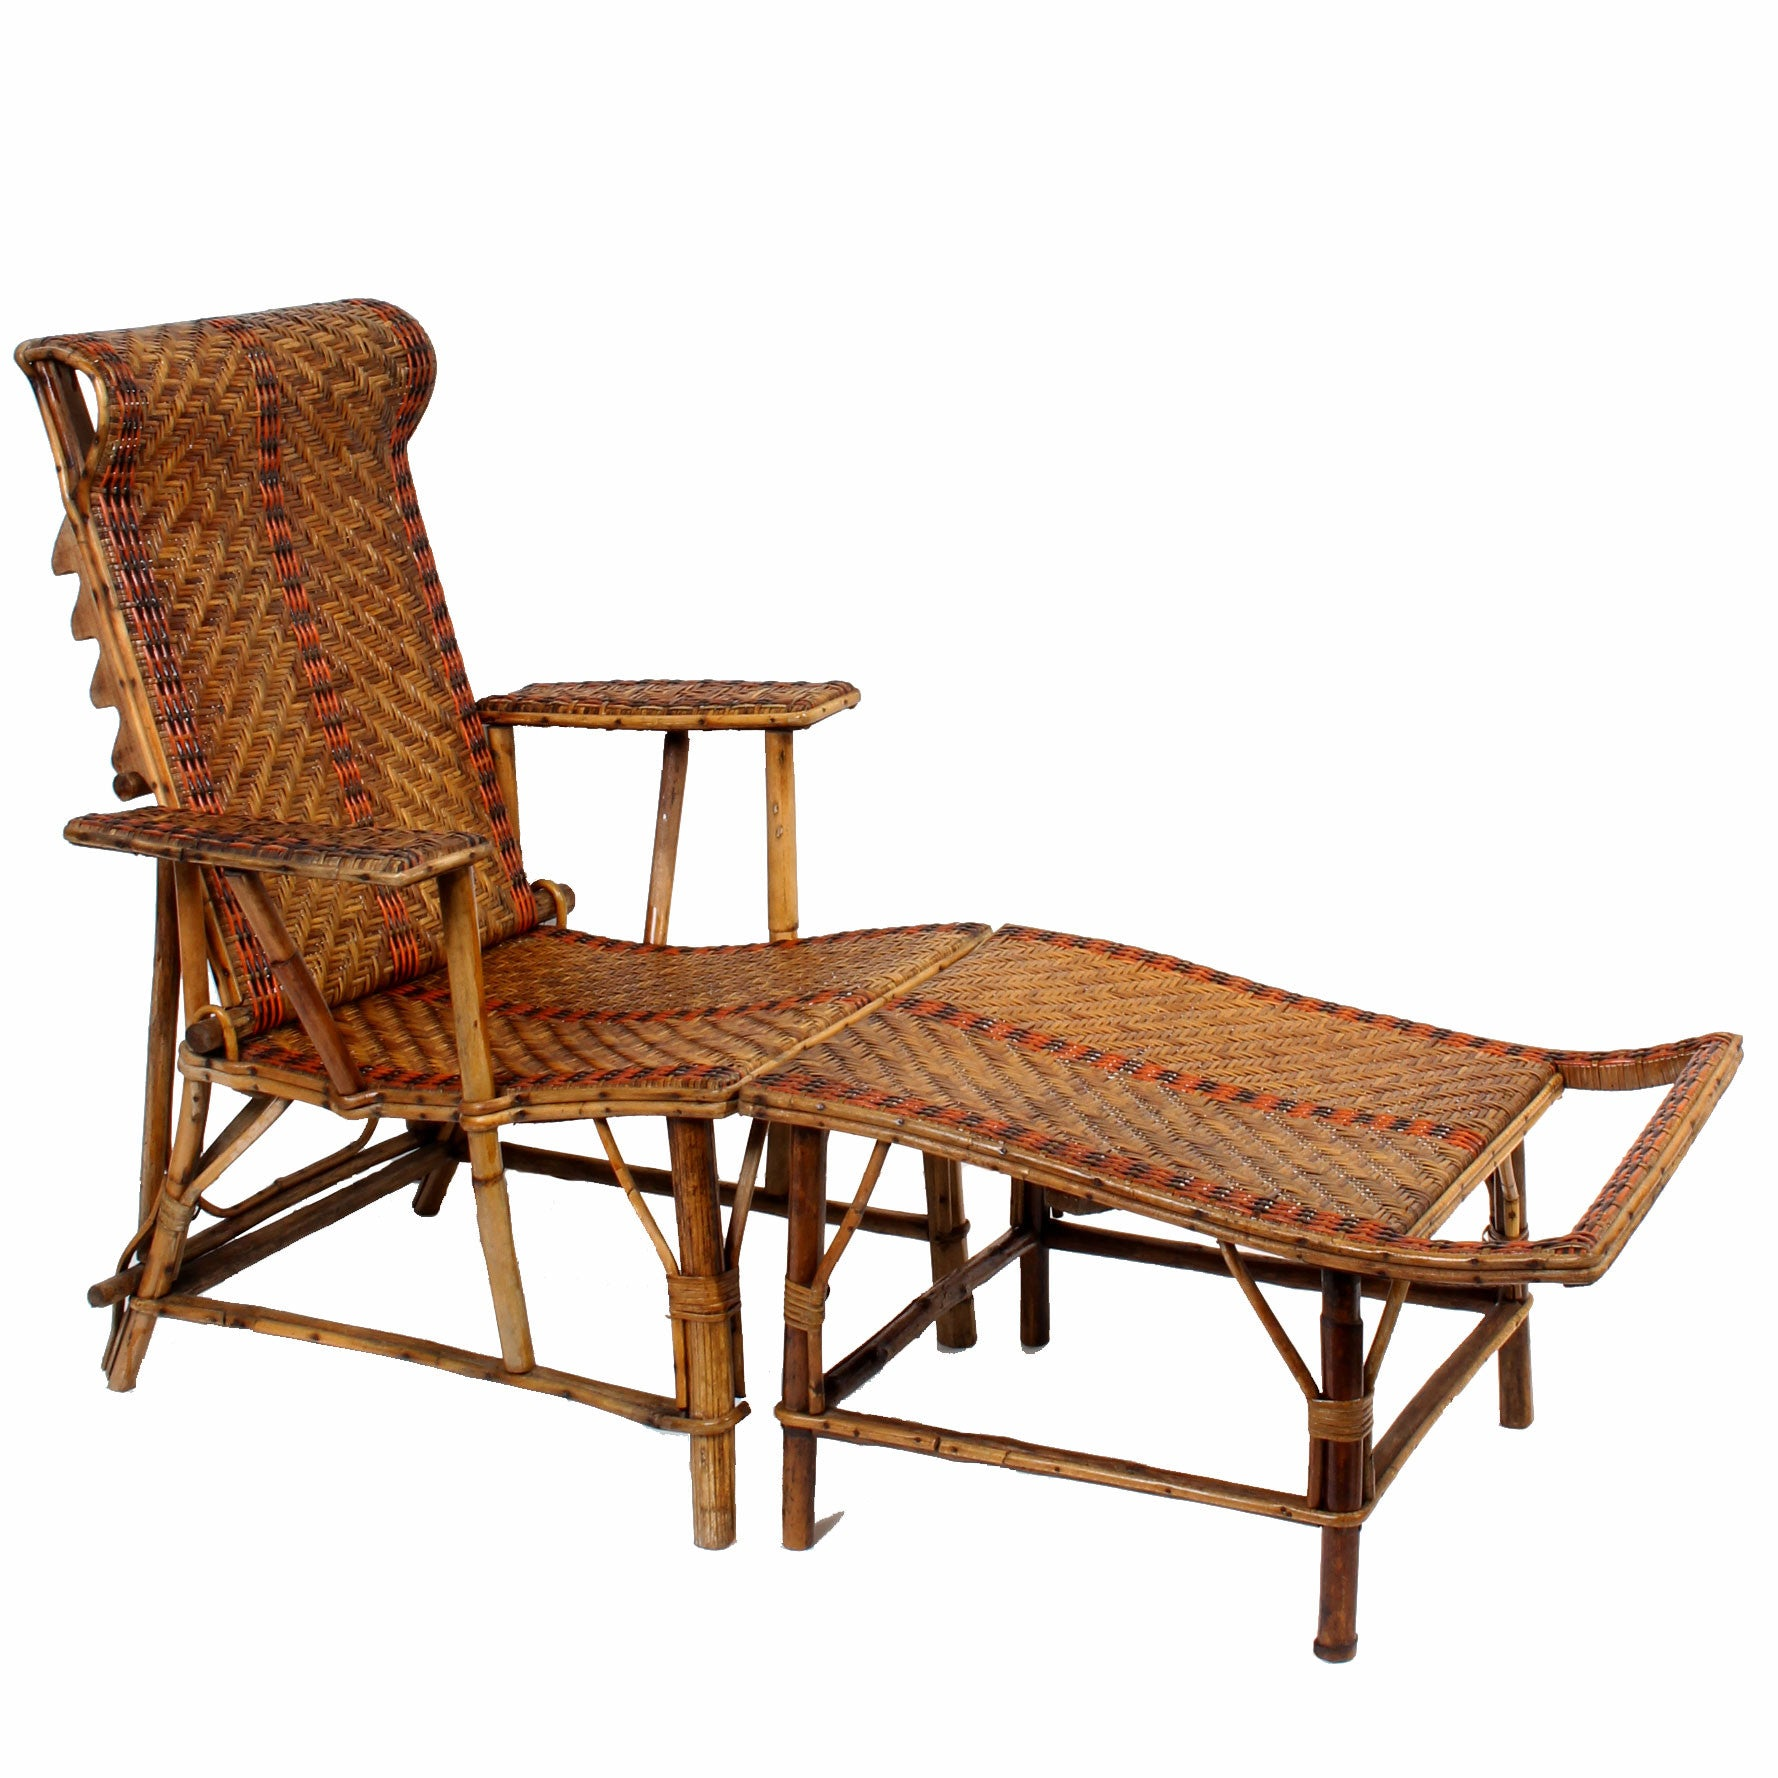 vintage french bamboo rattan chaise lounge fatto a. Black Bedroom Furniture Sets. Home Design Ideas